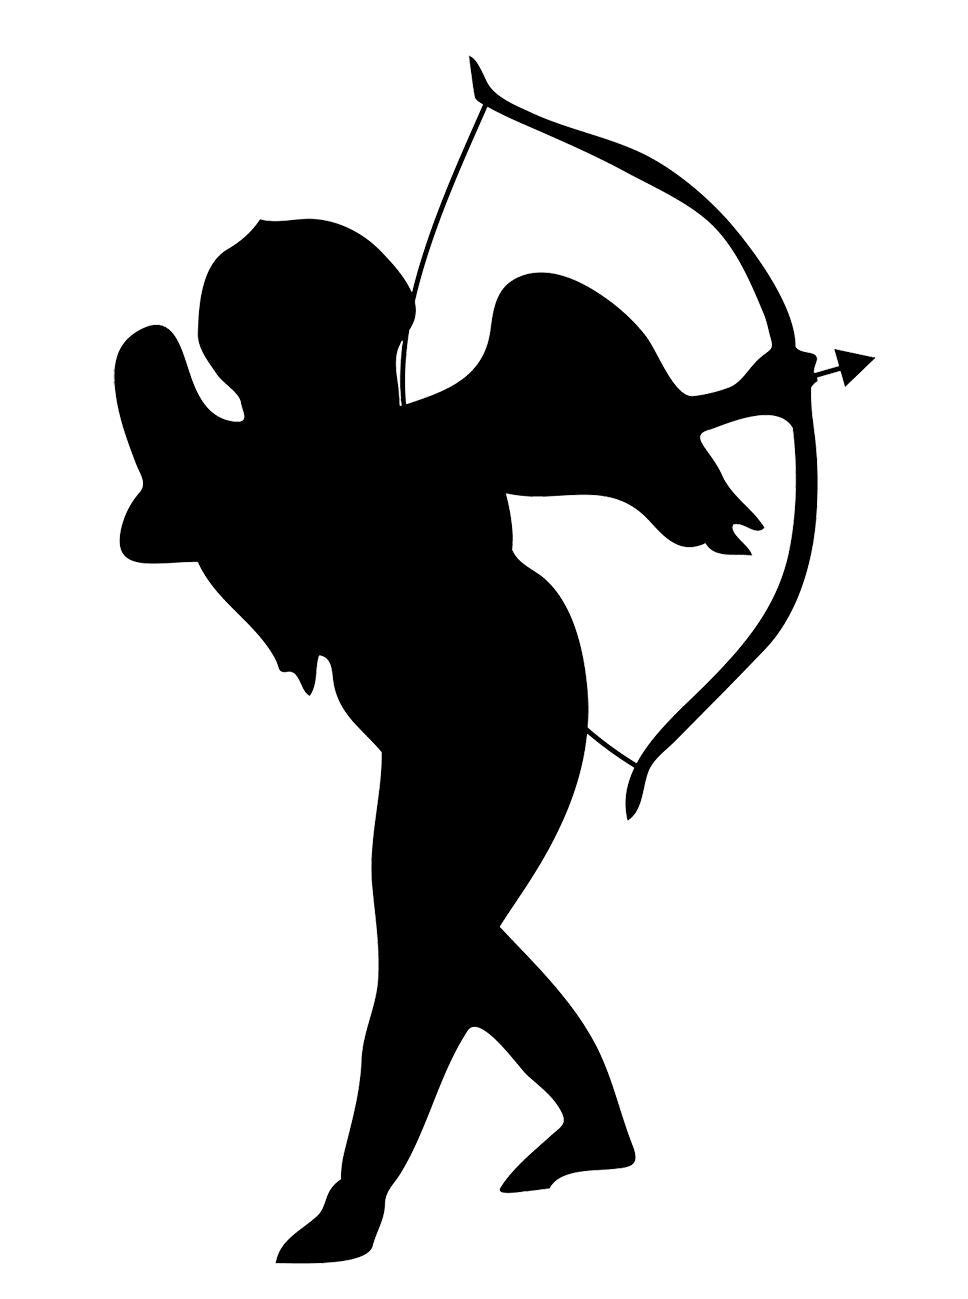 Christmas angels clipart black and white png black and white download Christmas Angels Silhouette at GetDrawings.com | Free for personal ... png black and white download